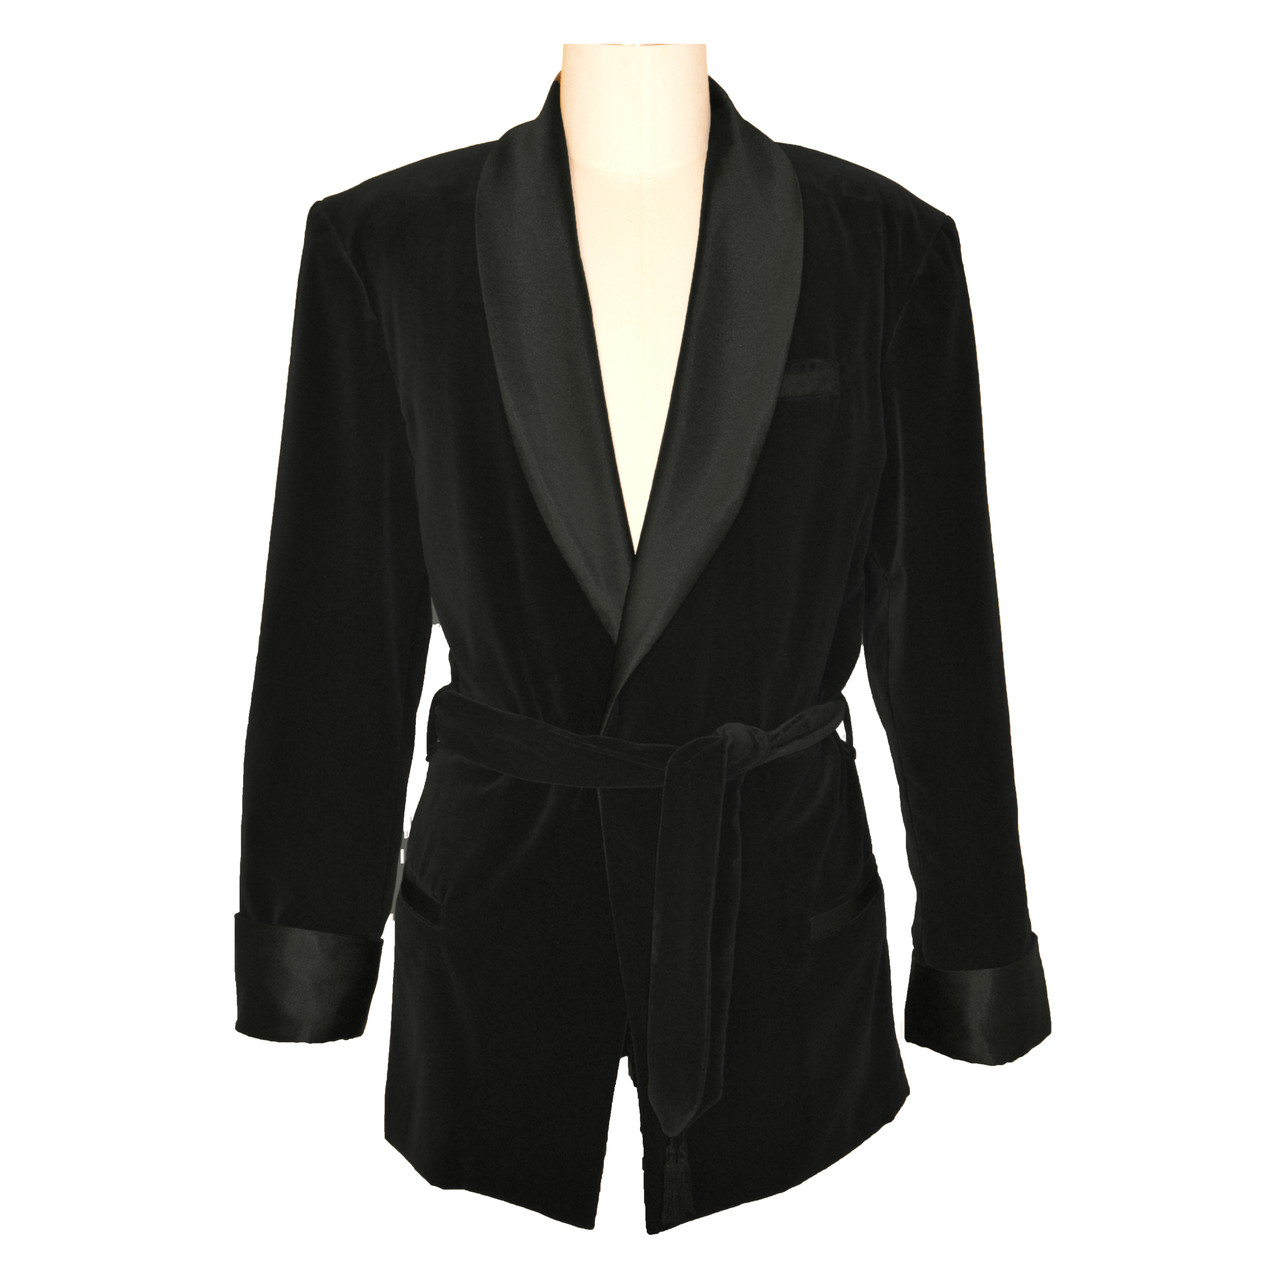 265e33a7b Women's Black Velvet Smoking Jacket with Paisley Lining